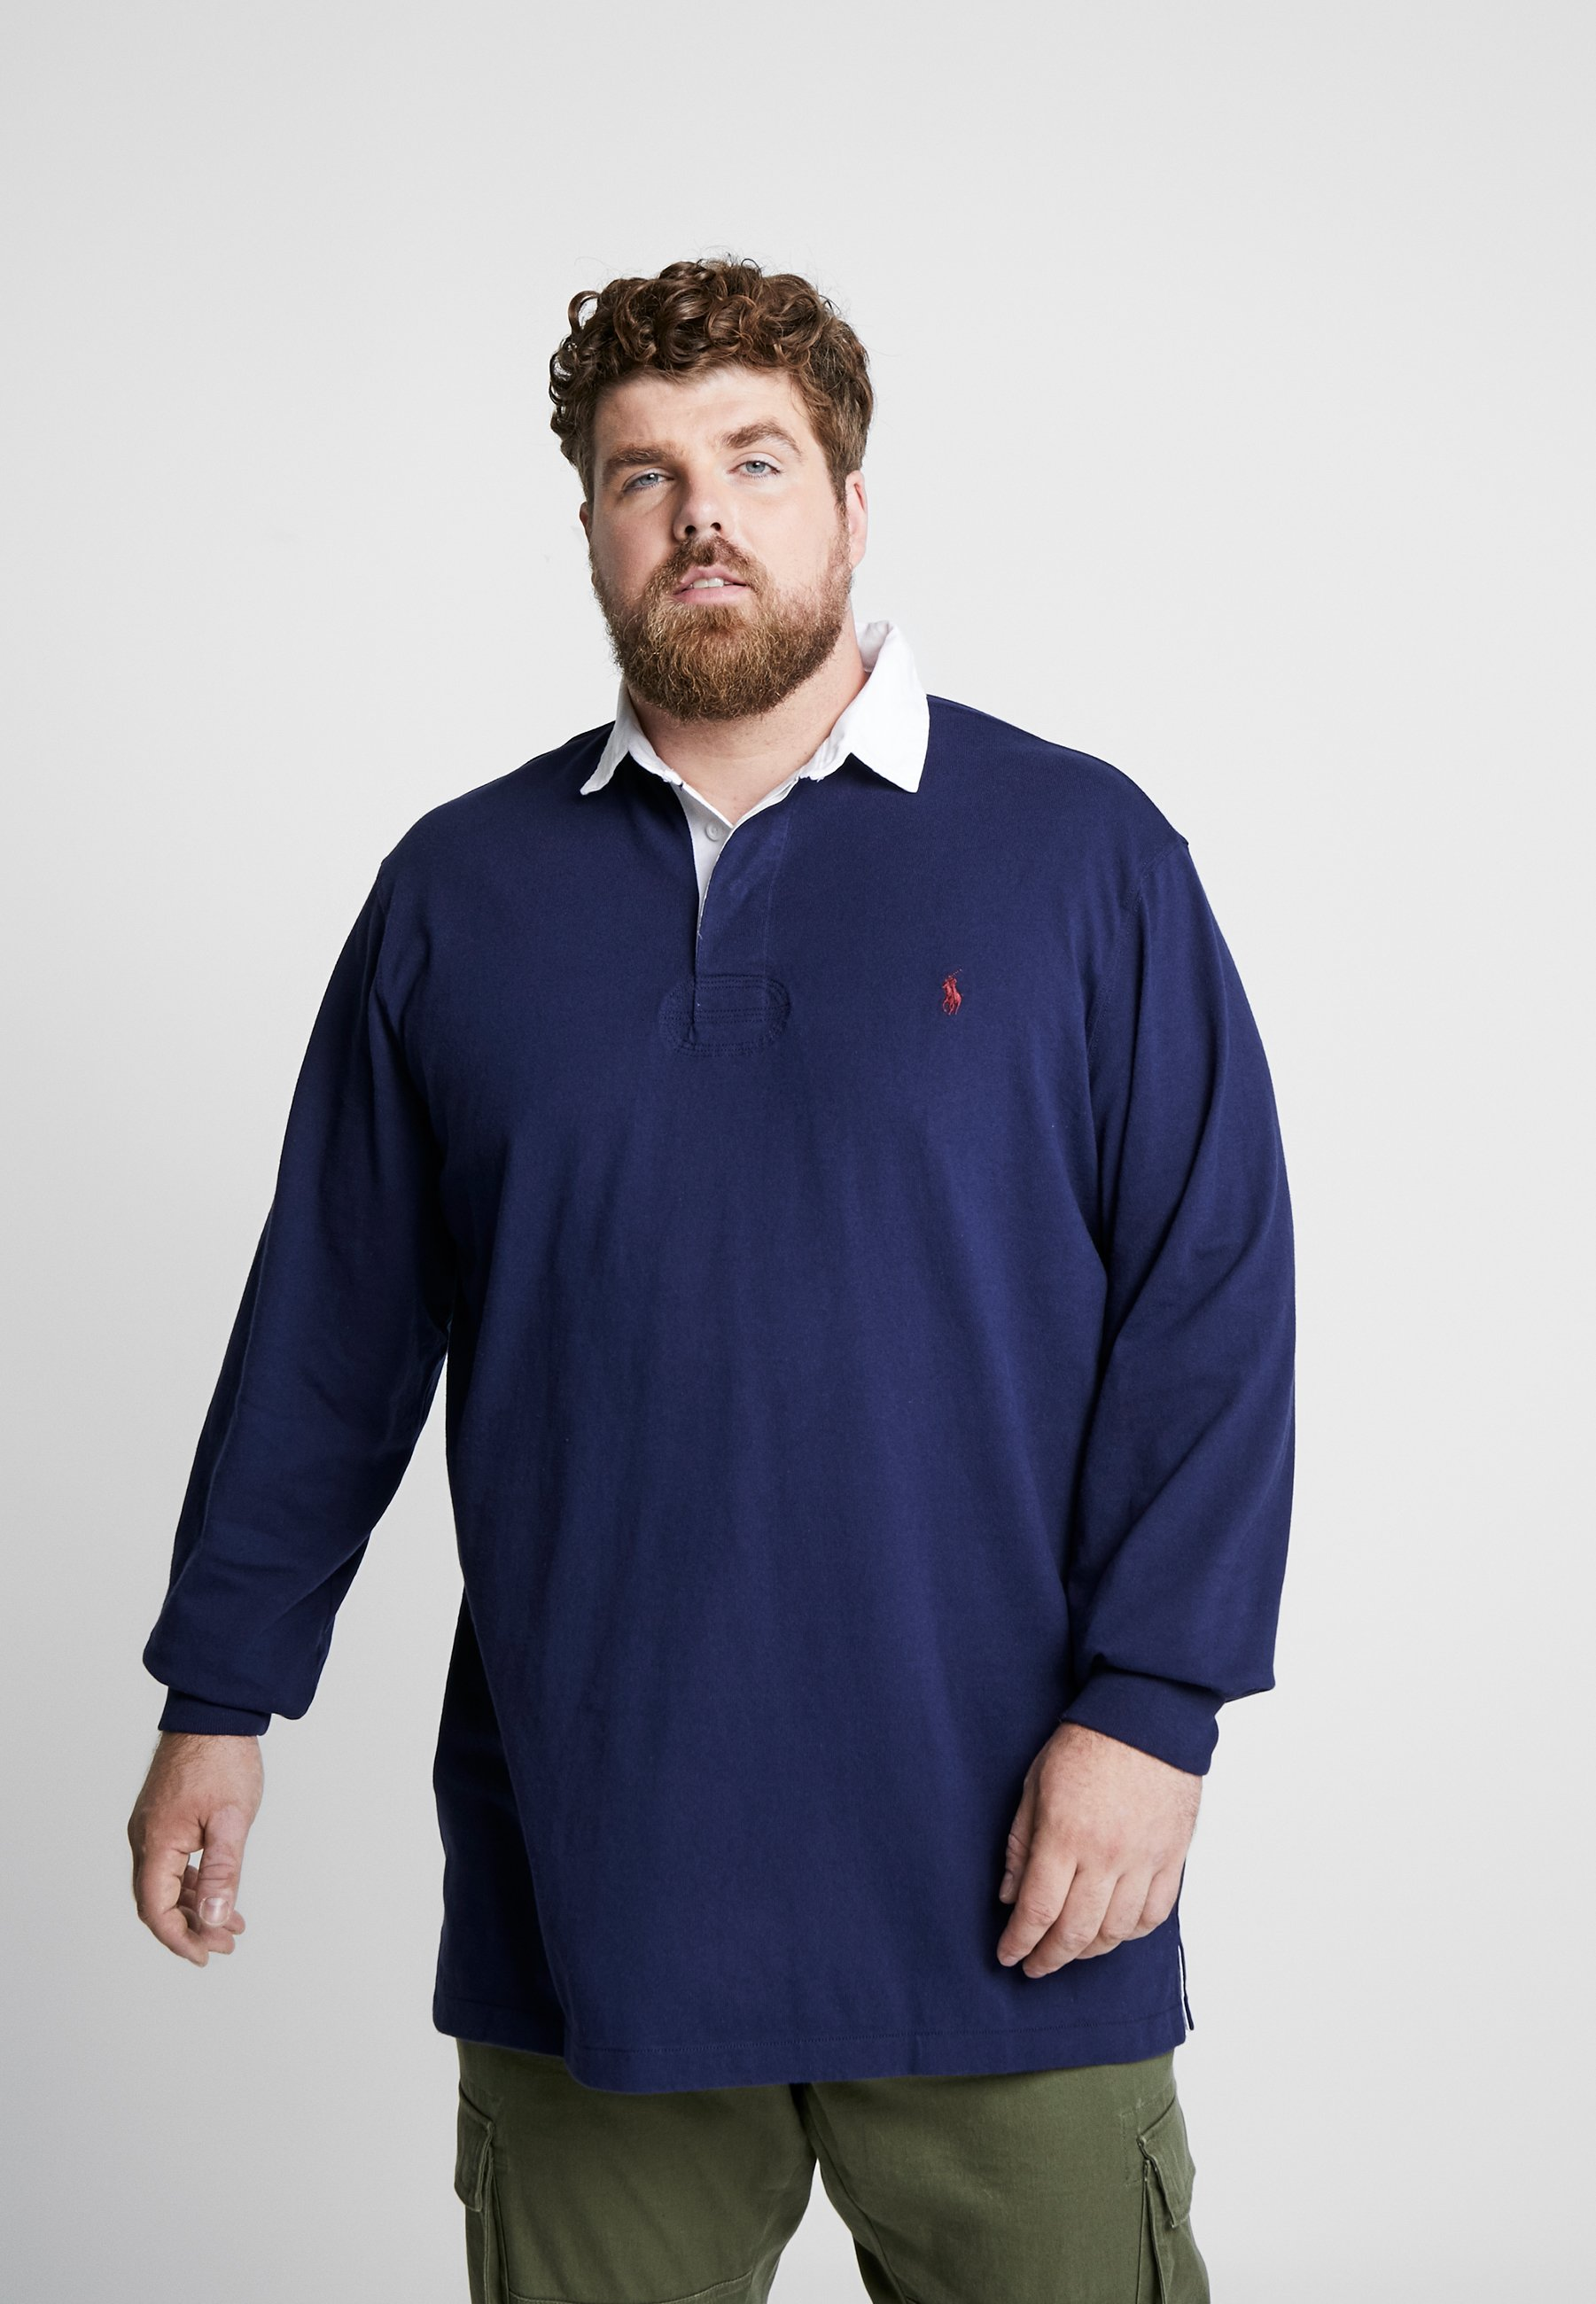 Ralph Navy Lauren Tall Bigamp; RusticFrench Polo N0wvPym8nO